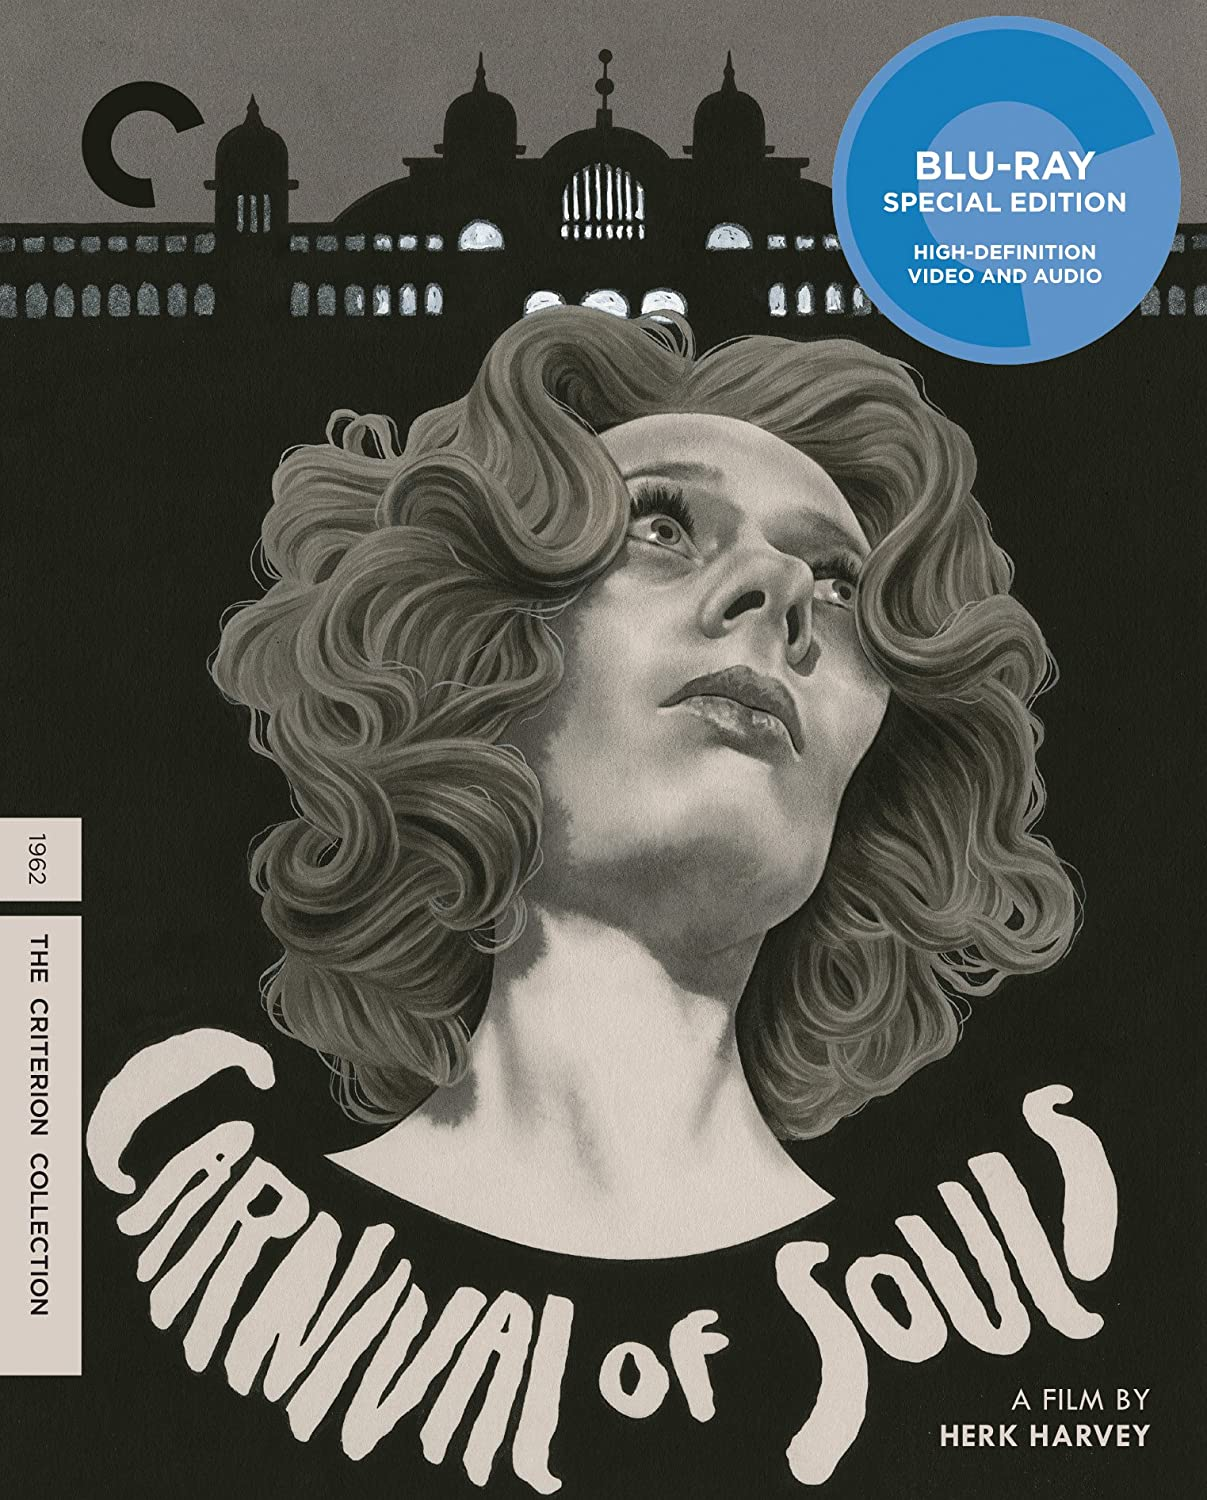 Carnival of Souls (Criterion Collection) [Blu-ray] Candace Hilligoss Frances Feist Sidney Berger Art Ellison